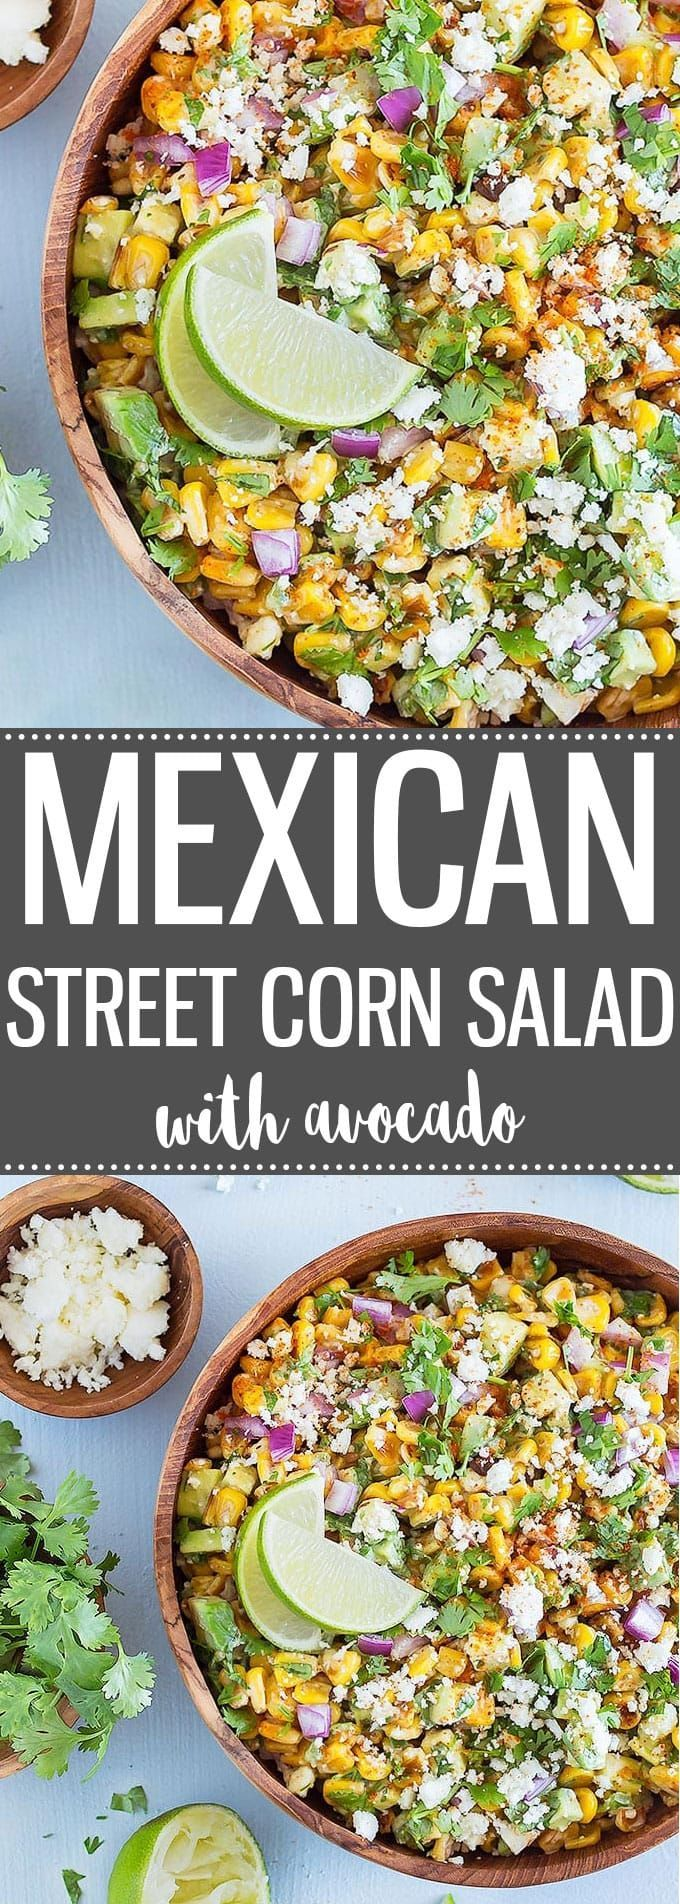 Mexican Street Corn Salad with Avocado is always a crowd-pleaser! It's fast and easy to prepare, and has a tasty balance of fresh flavors and textures.